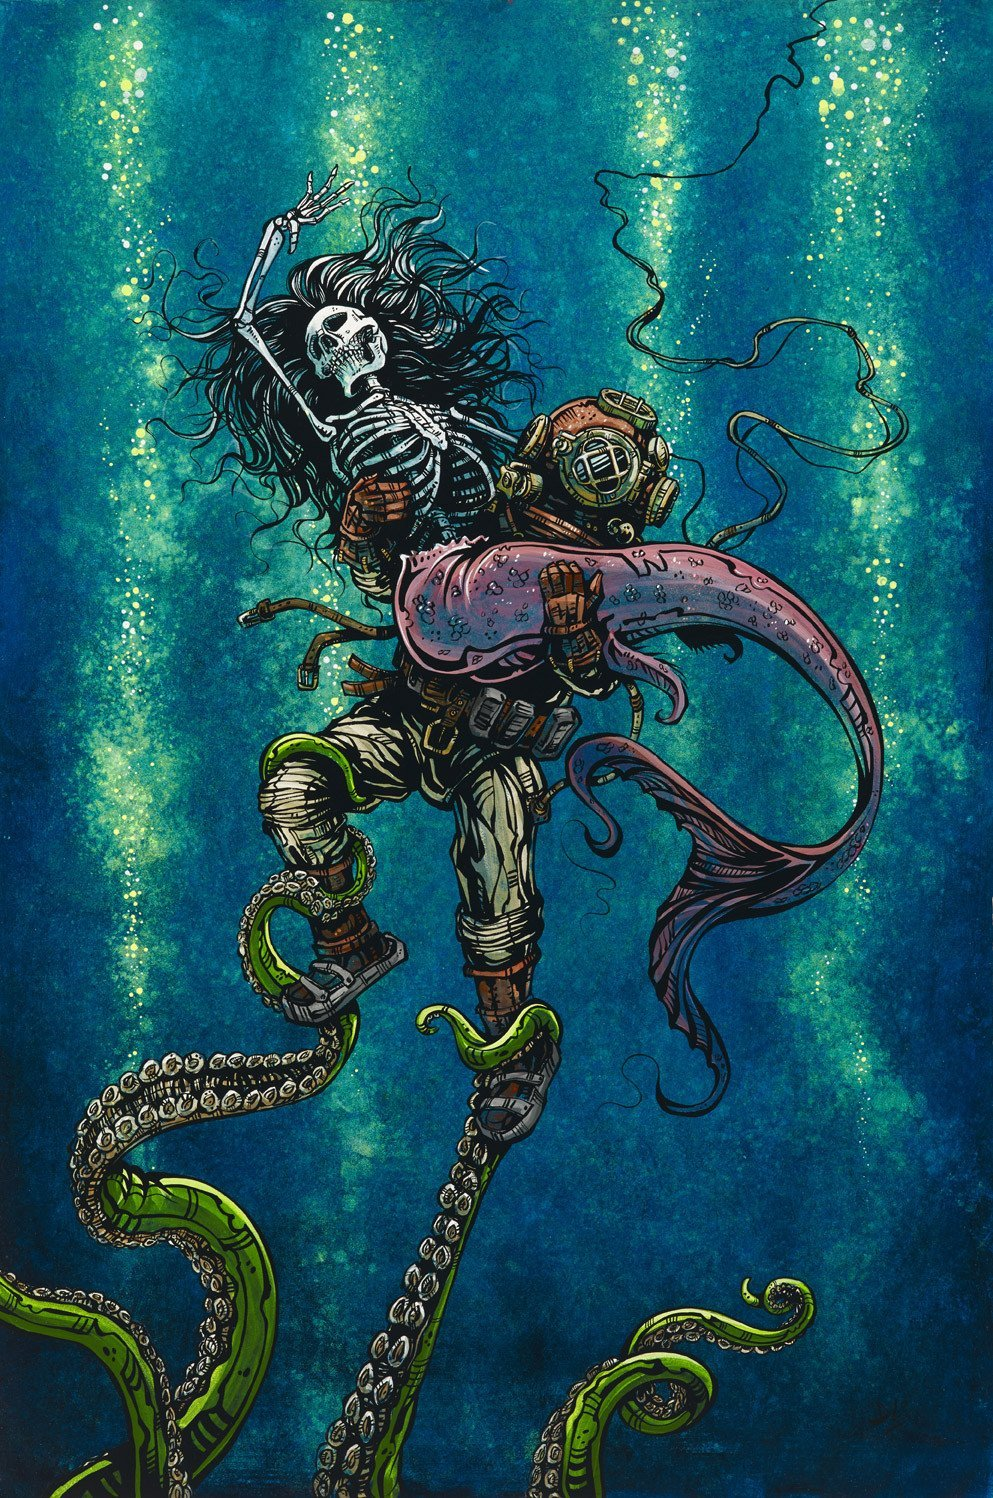 Catch or Release by Day of the Dead Artist David Lozeau, Day of the Dead Art, Dia de los Muertos Art, Dia de los Muertos Artist